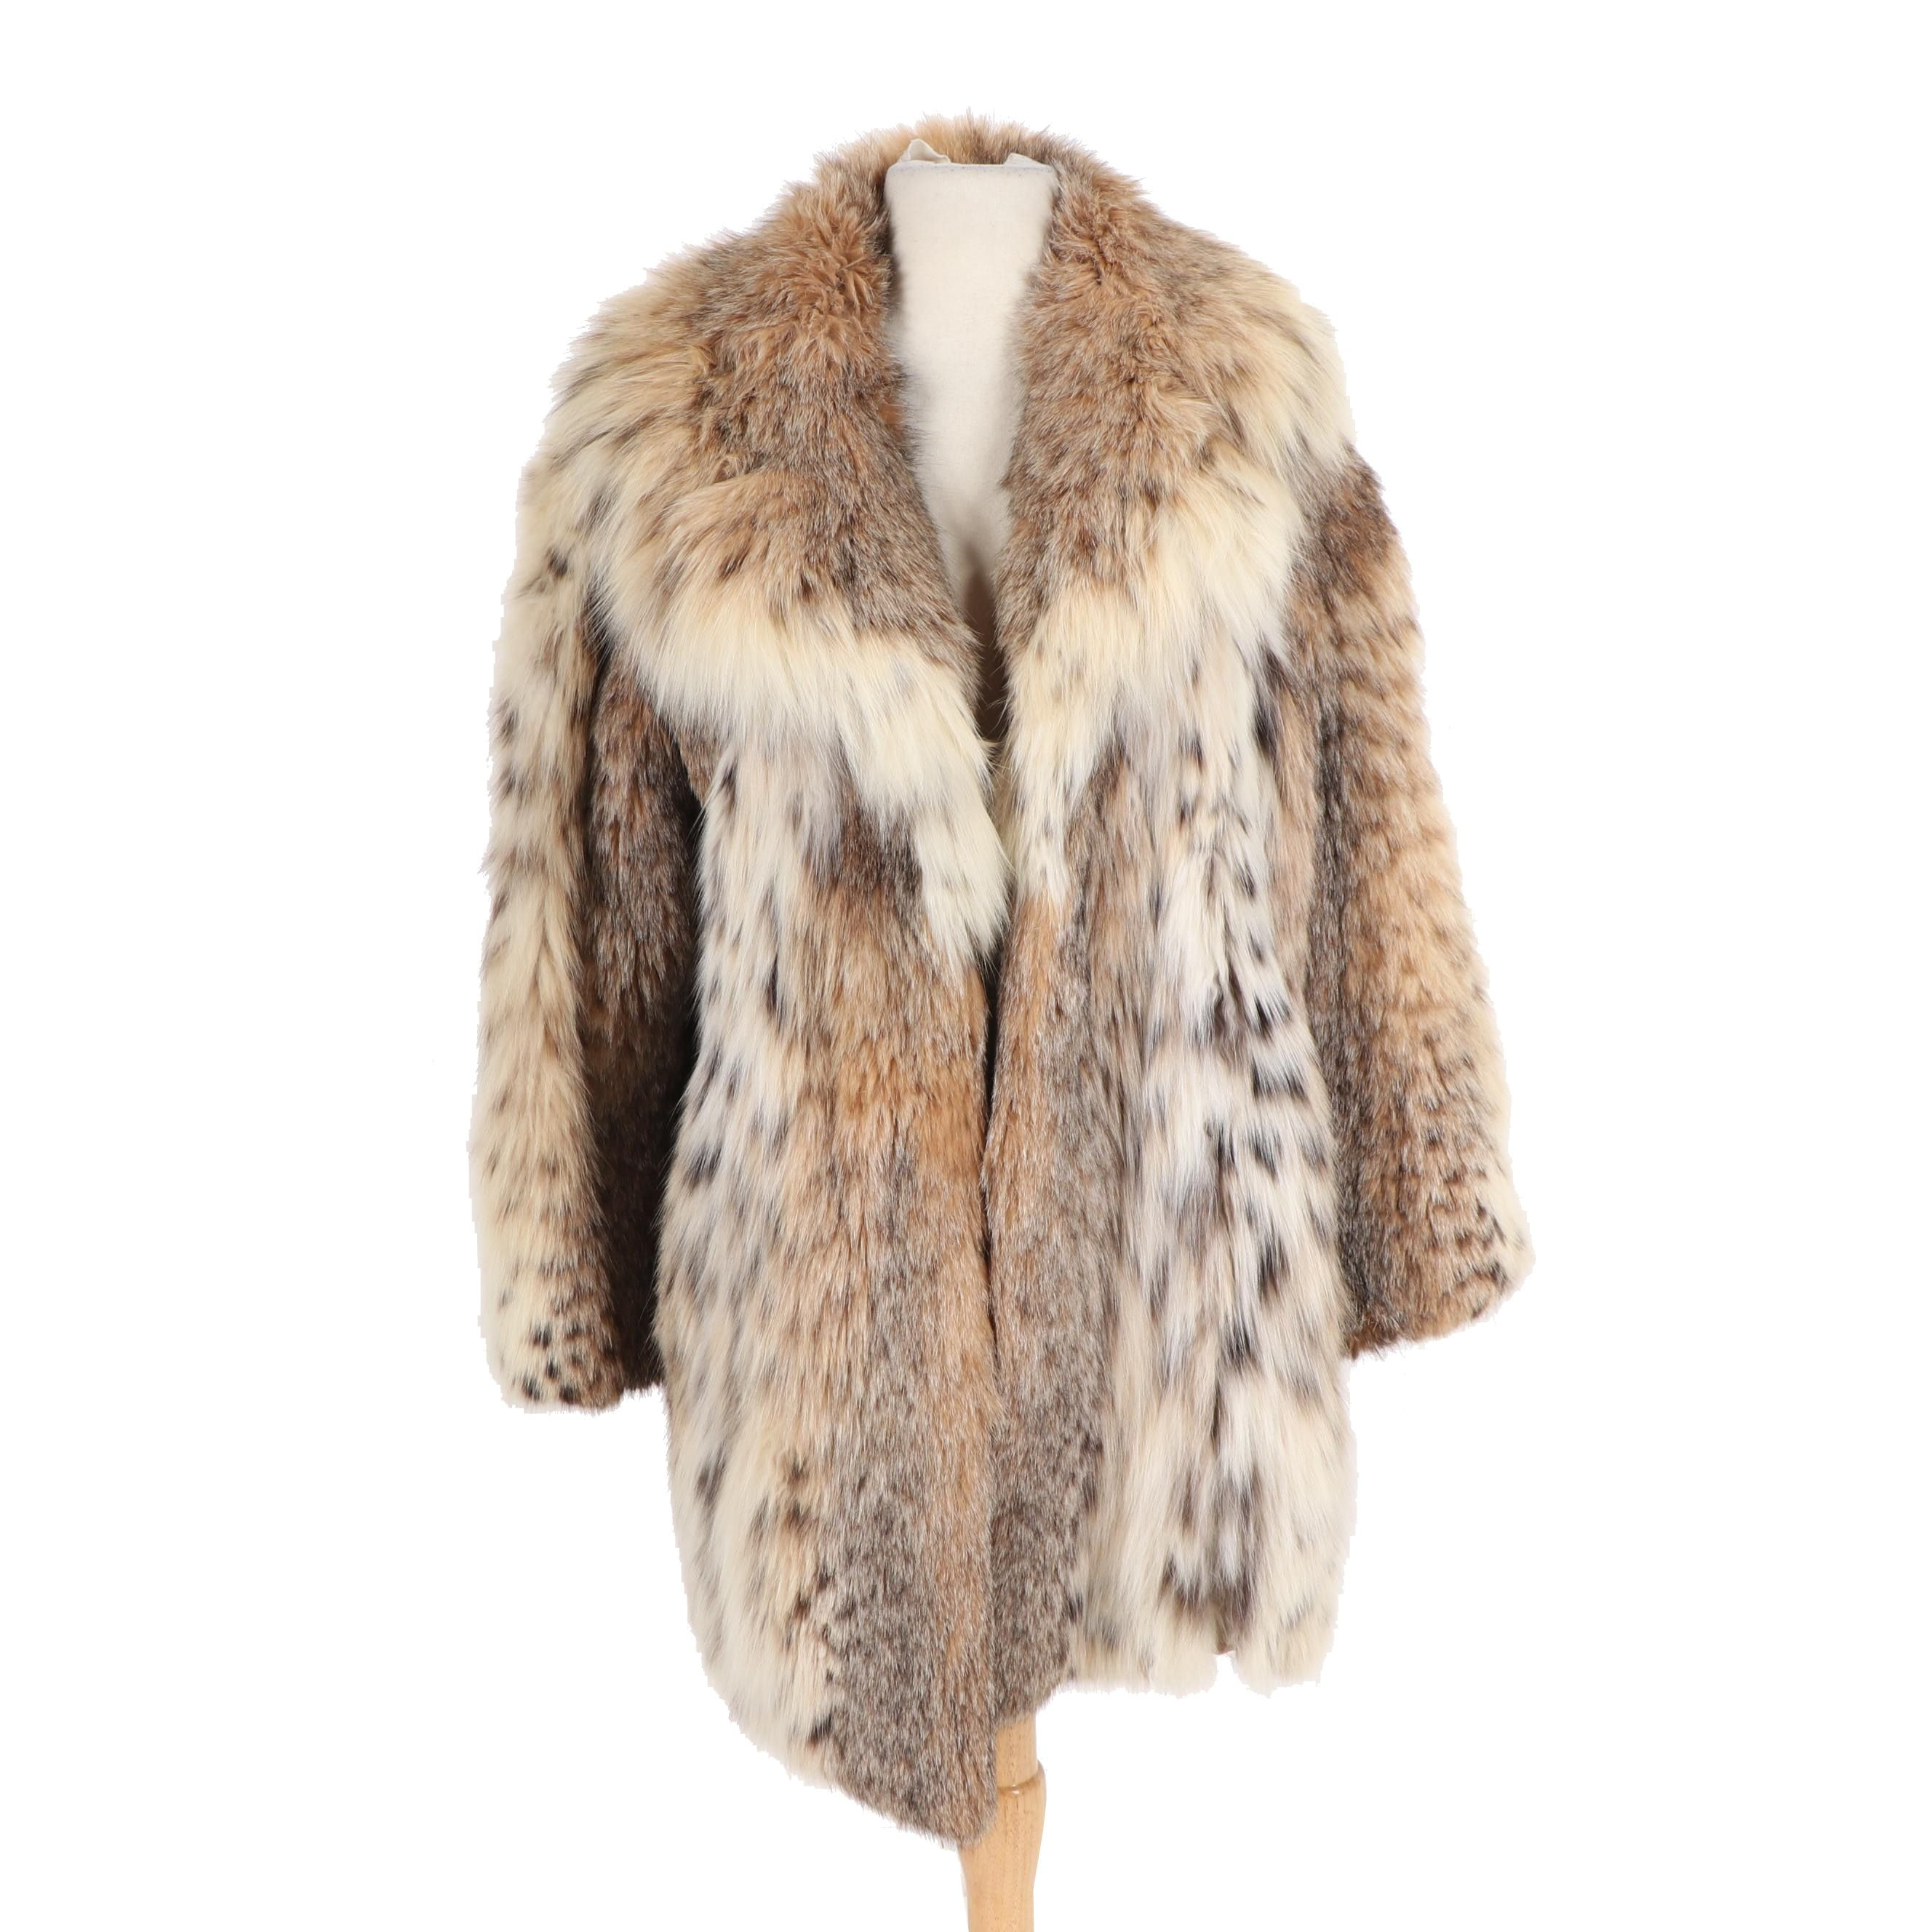 Women's Szor-Diener Canadian Lynx Fur Coat